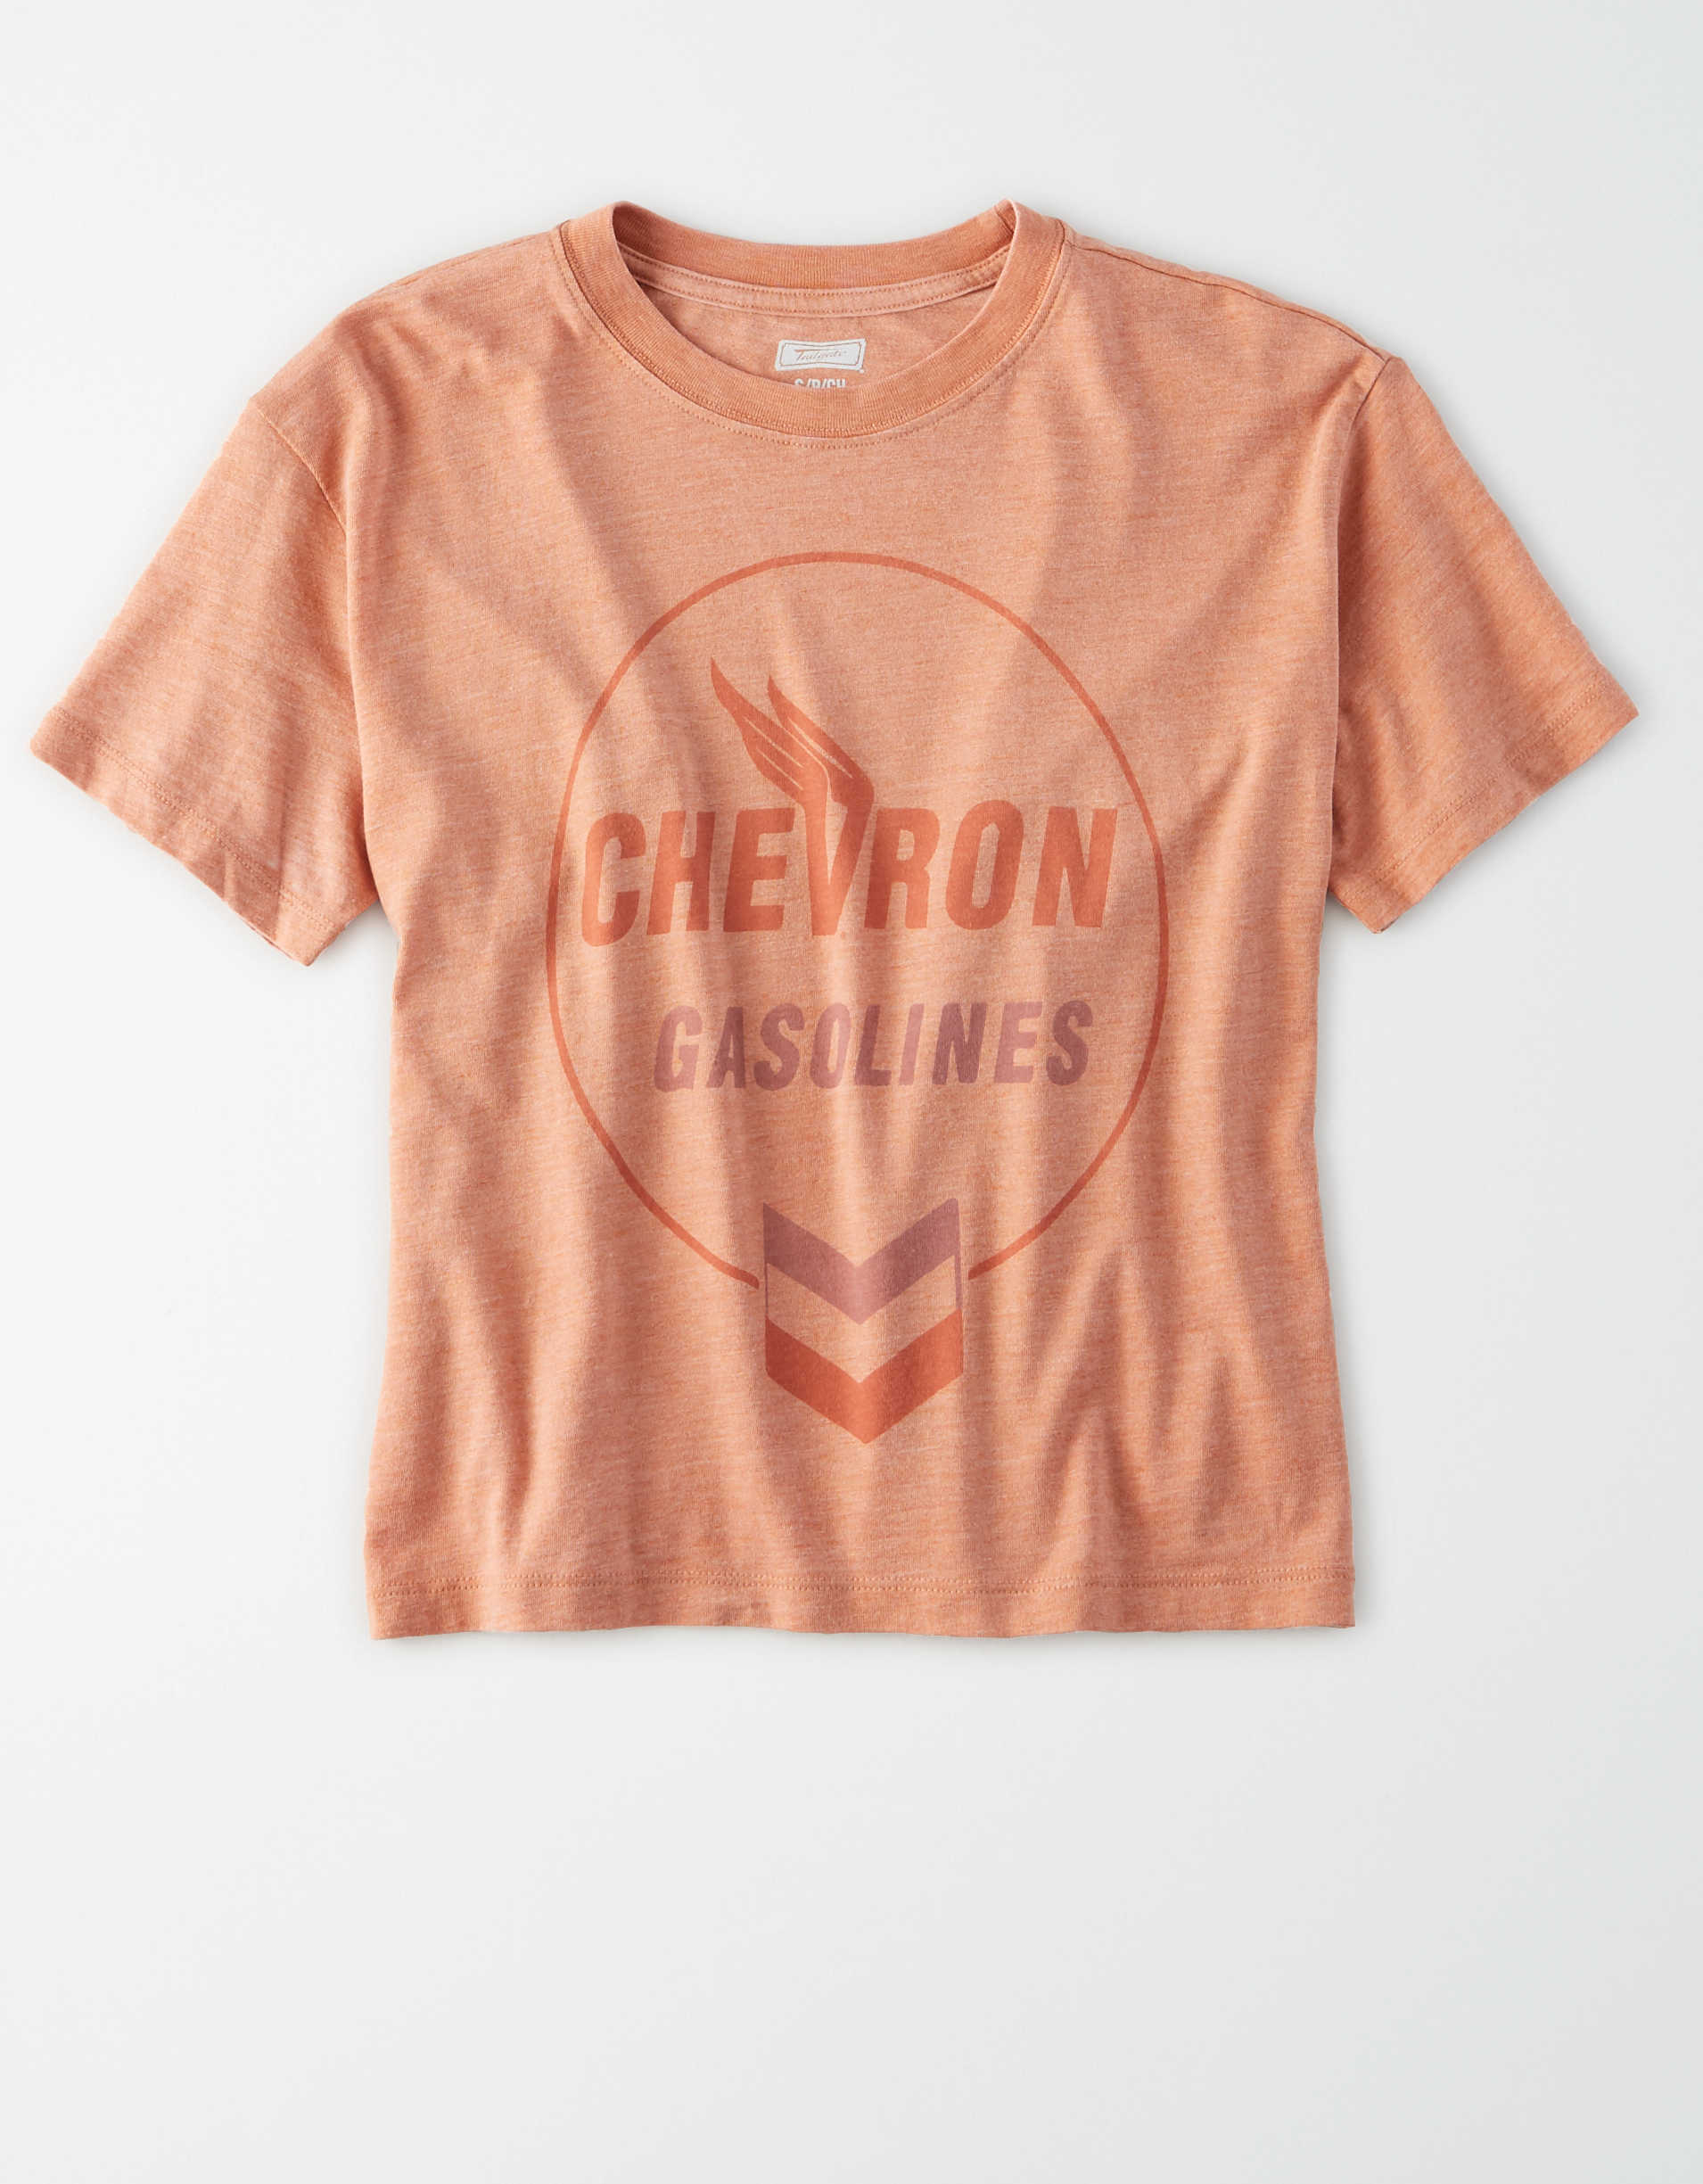 Tailgate Women's Chevron Cropped T Shirt by American Eagle Outfitters